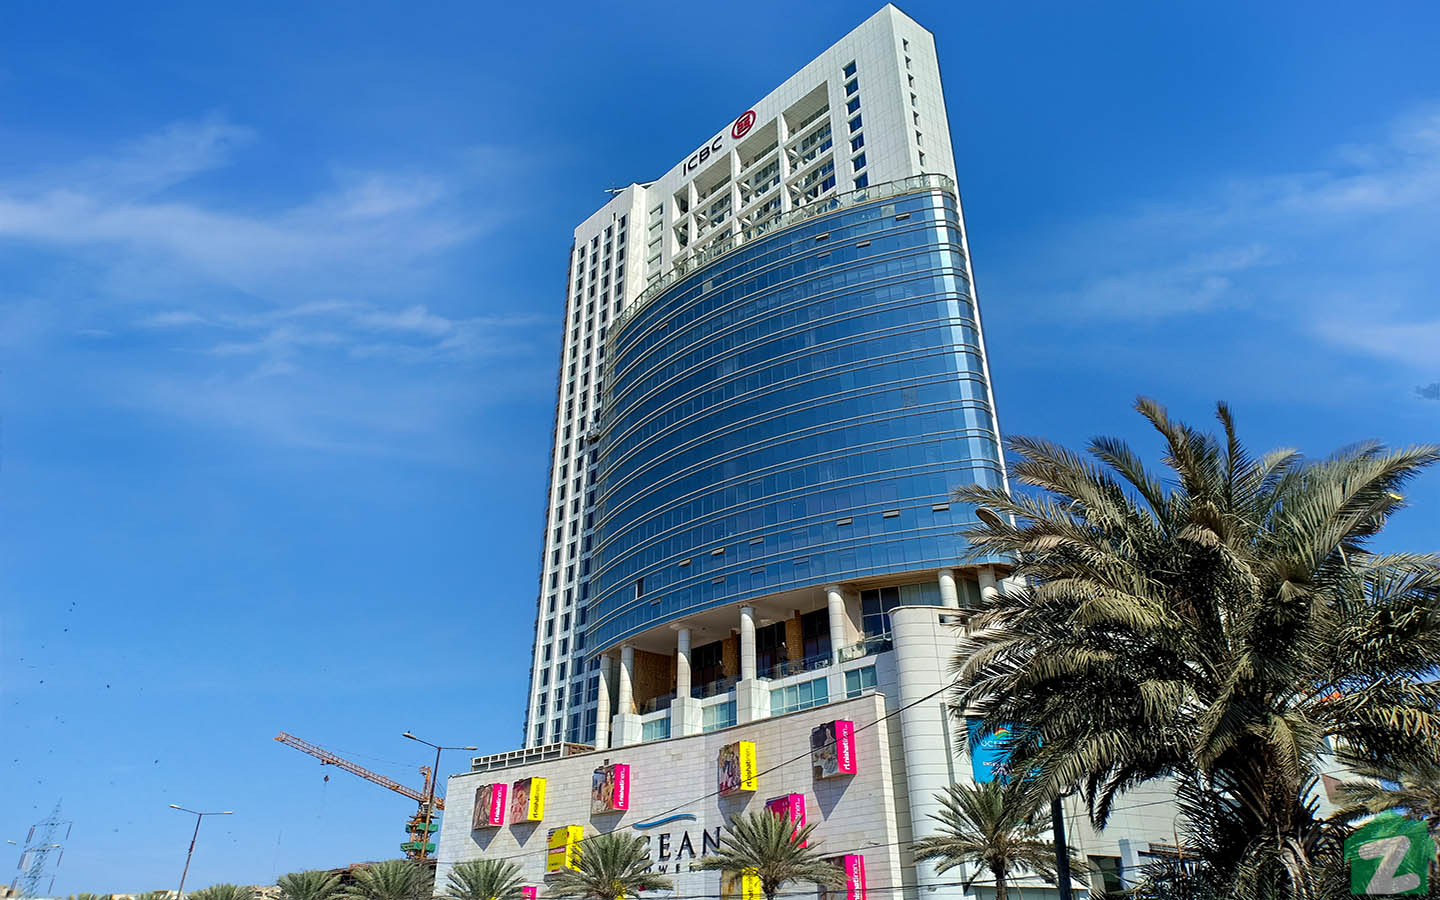 shopping mall in clifton karachi less than 10 minutes away from Phase 5